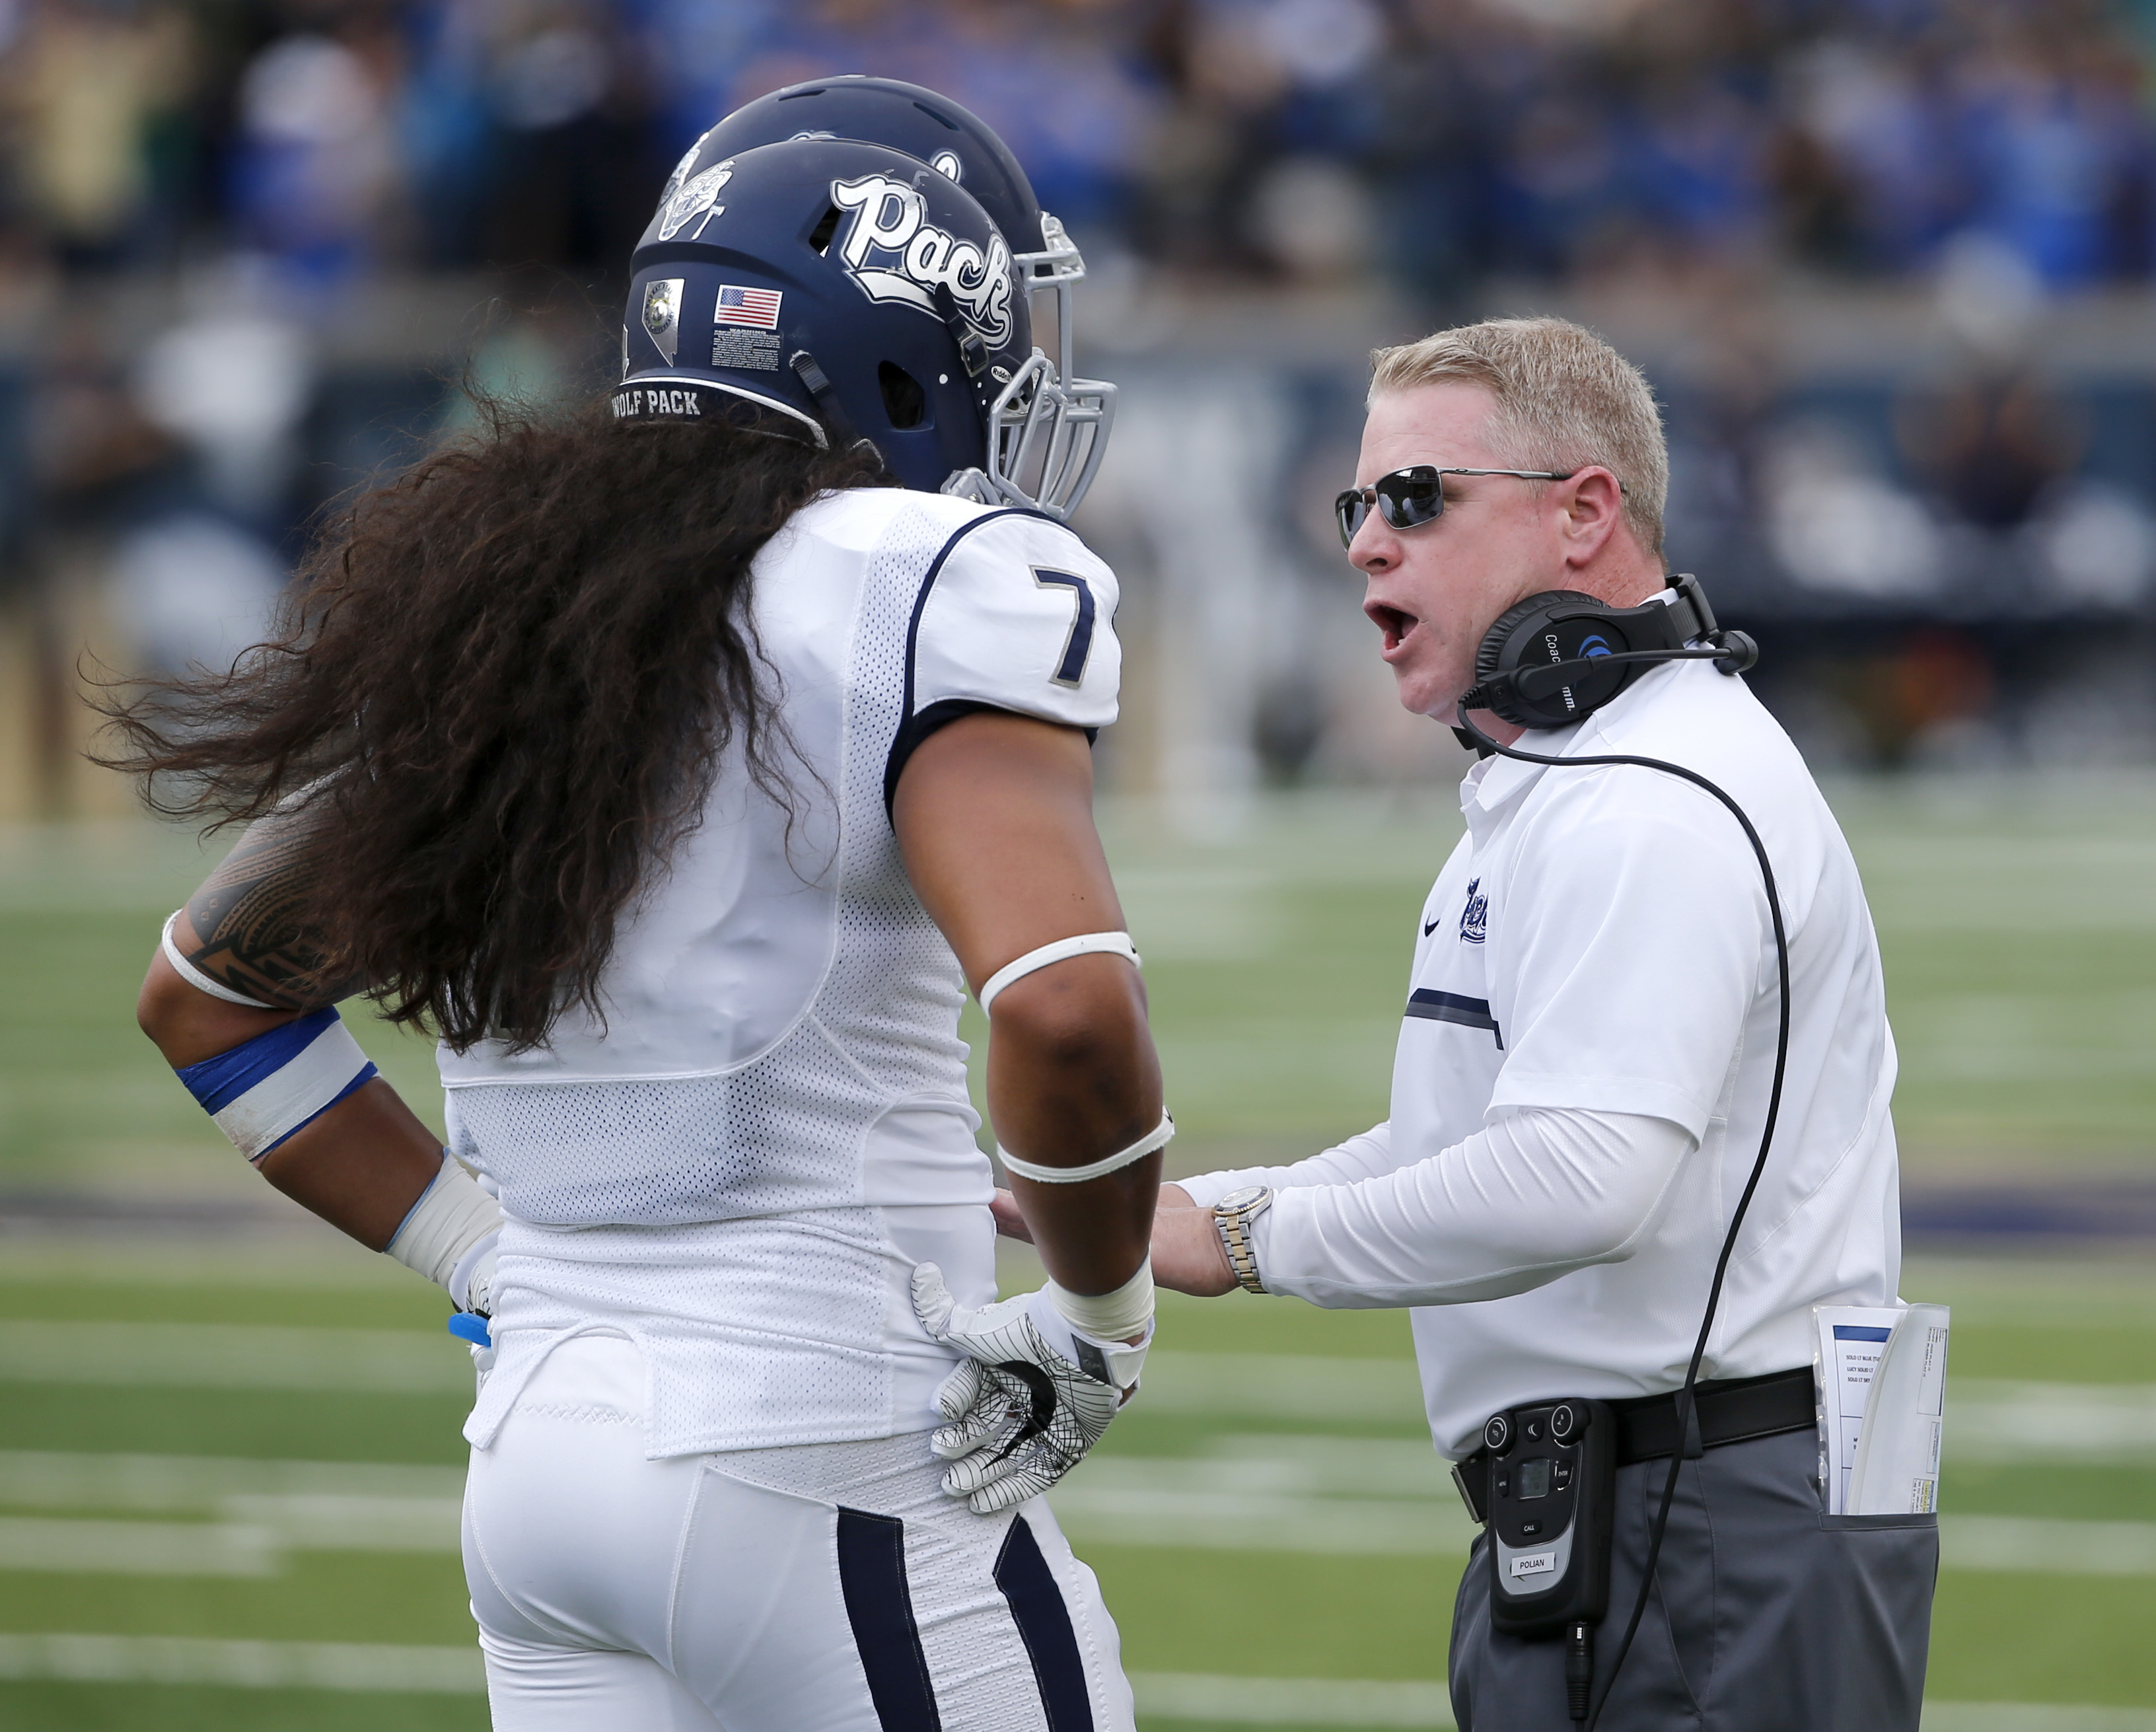 Nevada head coach Brian Polian, right, talks with Gabriel Sewell (7) during the first half of an NCAA college football game against Notre Dame, Saturday, Sept. 10, 2016, in South Bend, Ind. (AP Photo/Charles Rex Arbogast)